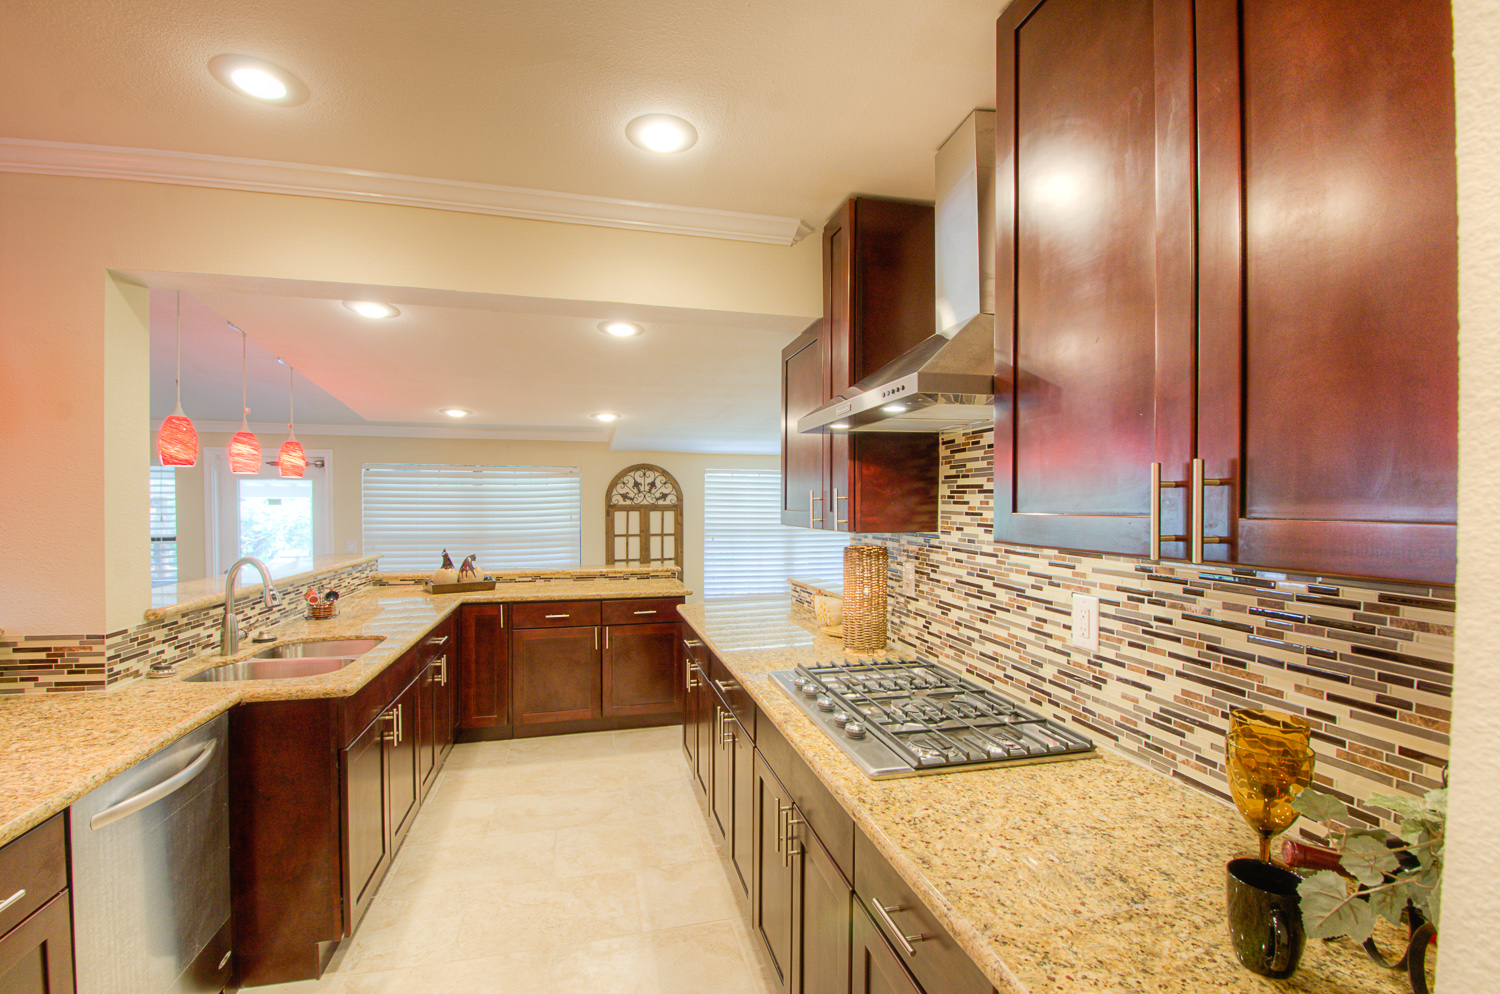 david montelongo design build kitchen remodel 4.jpg